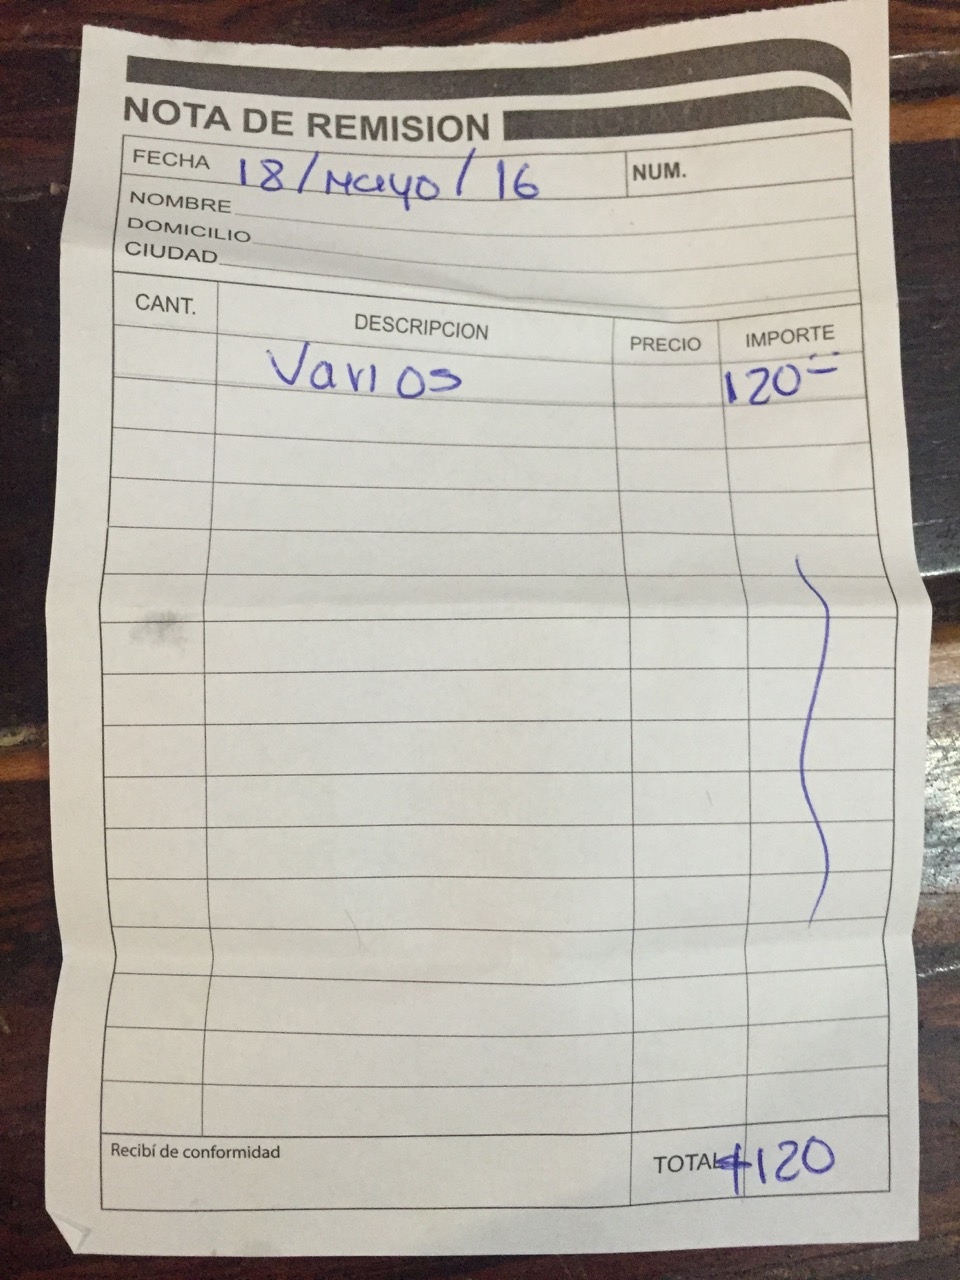 "'Various: 120 pesos.'   ""Thanks Paula...you know what, going forward, let's just forget about these receipts."""